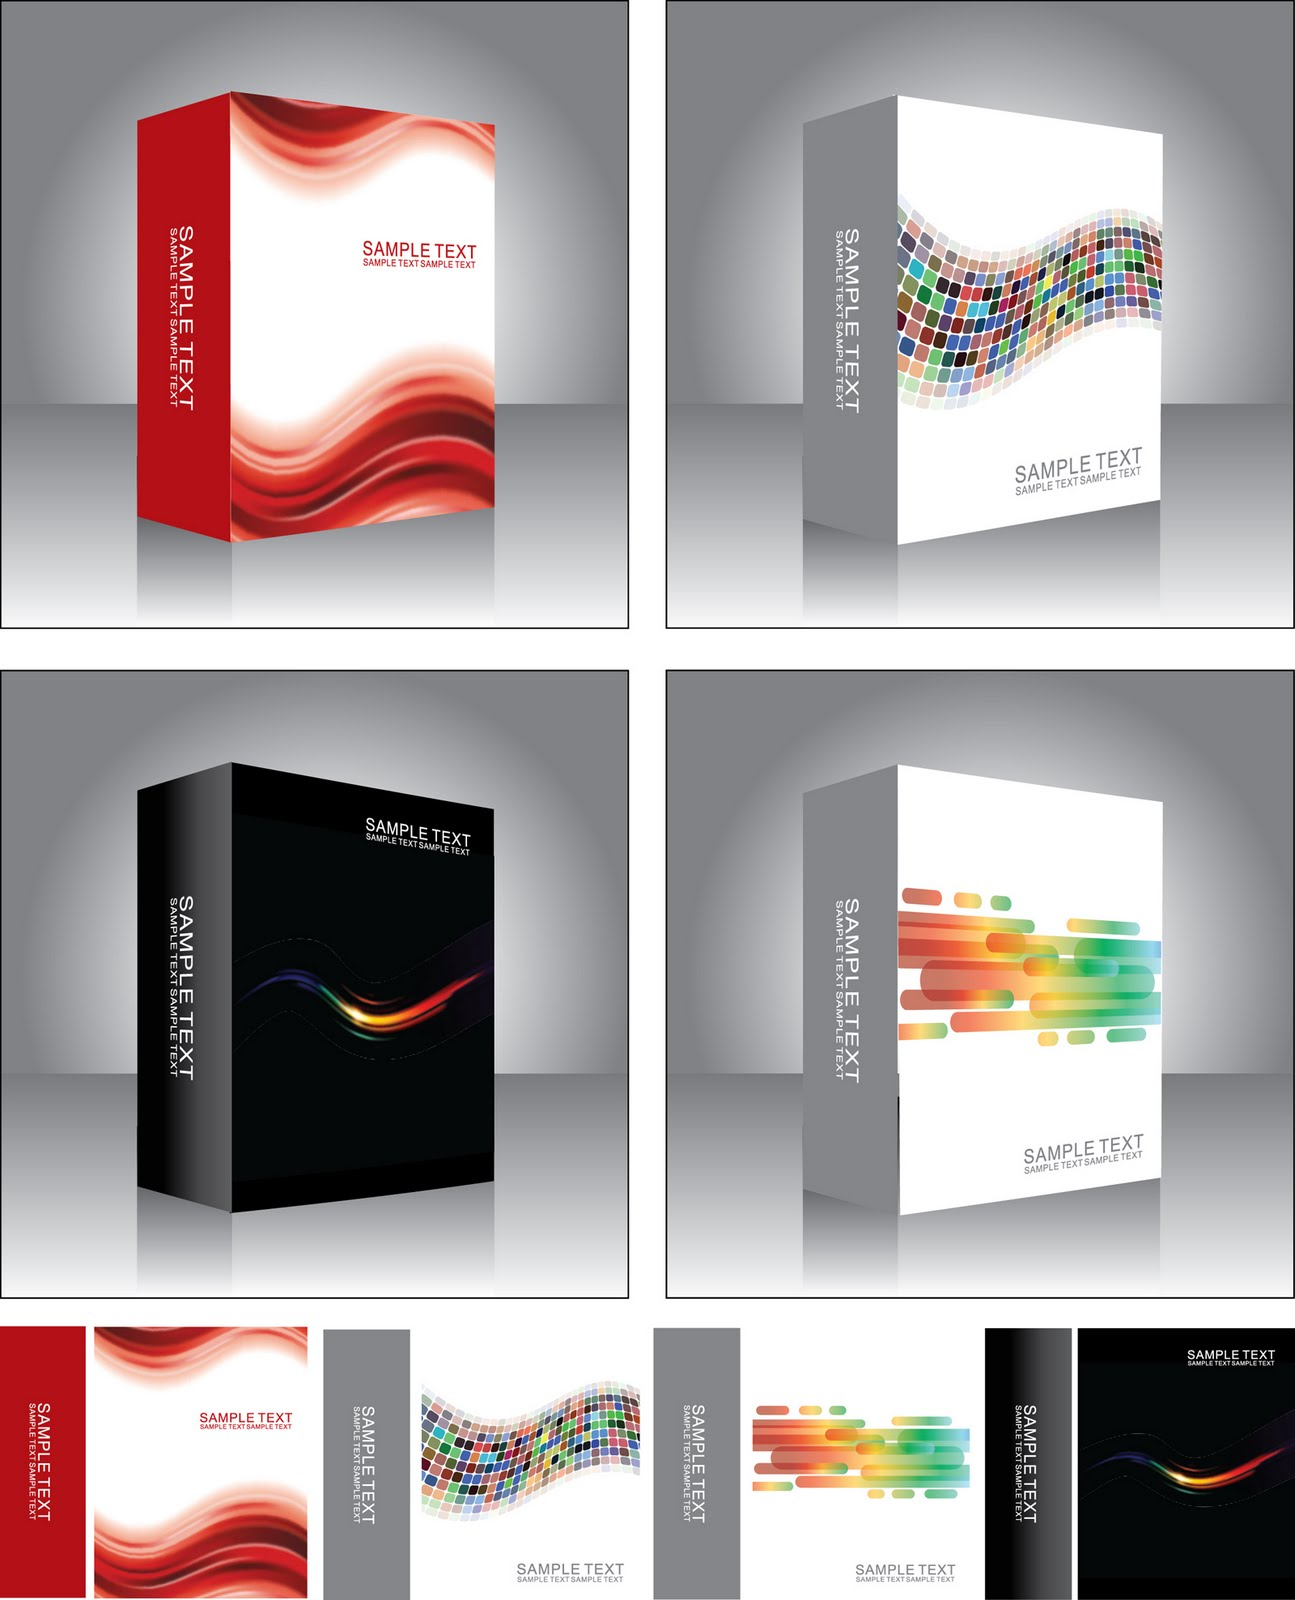 Custom Design Packaging Boxes: These softwares are encased in ...